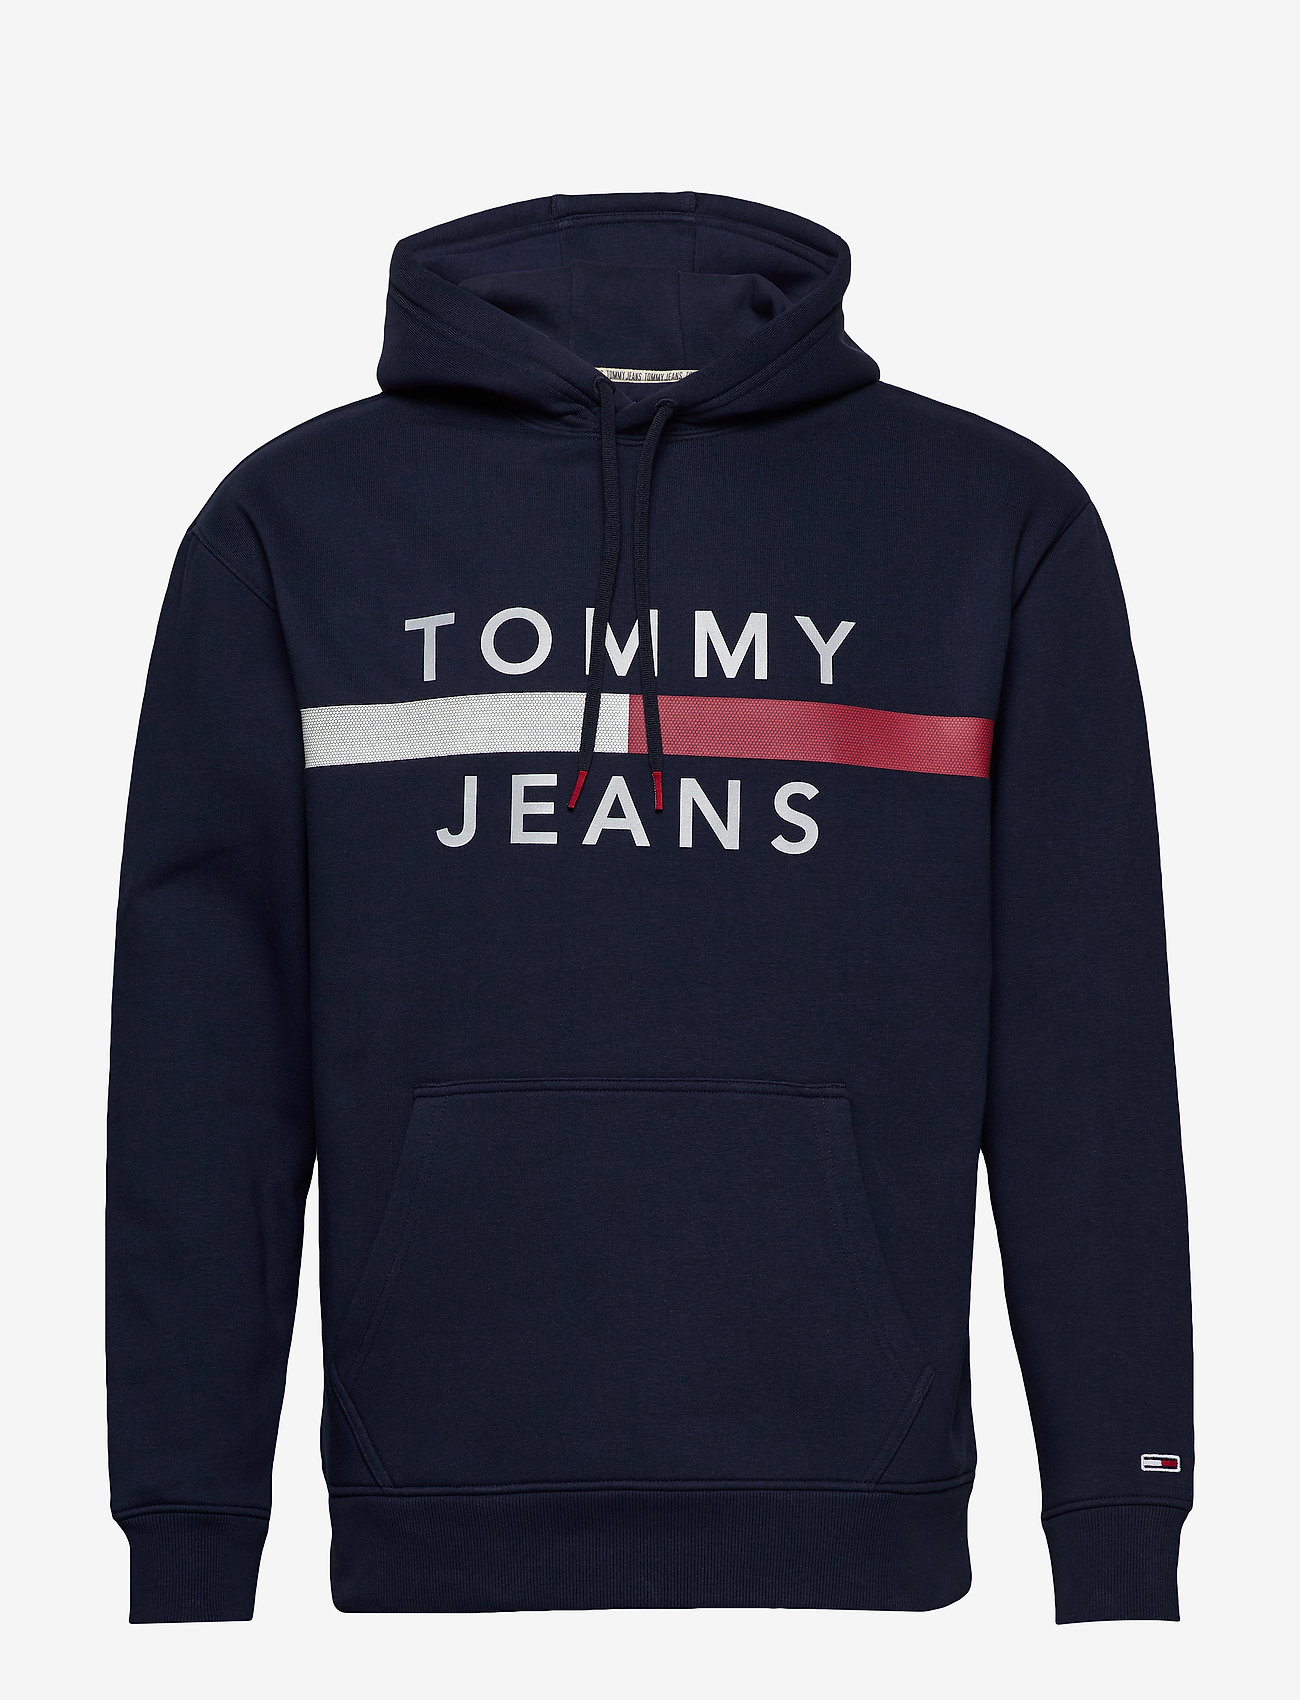 Tommy Jeans - TJM REFLECTIVE FLAG - hoodies - black iris